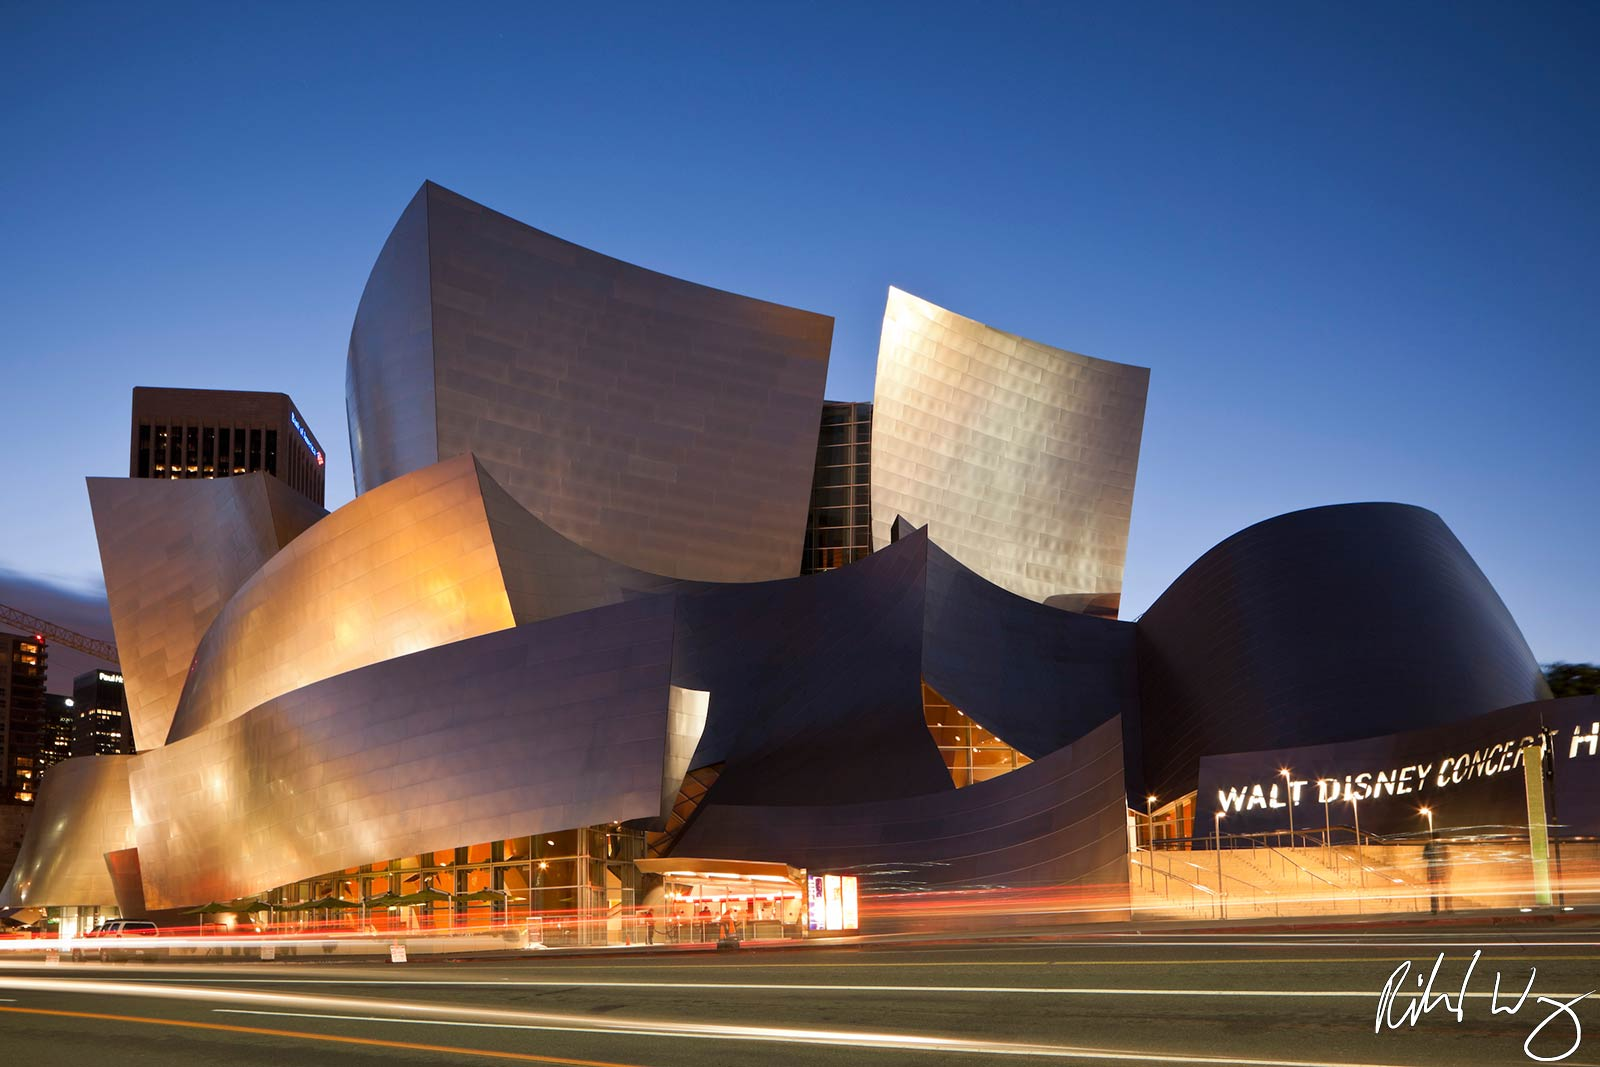 walt disney concert hall, frank gehry architecture, los angeles, downtown la, photo, photo